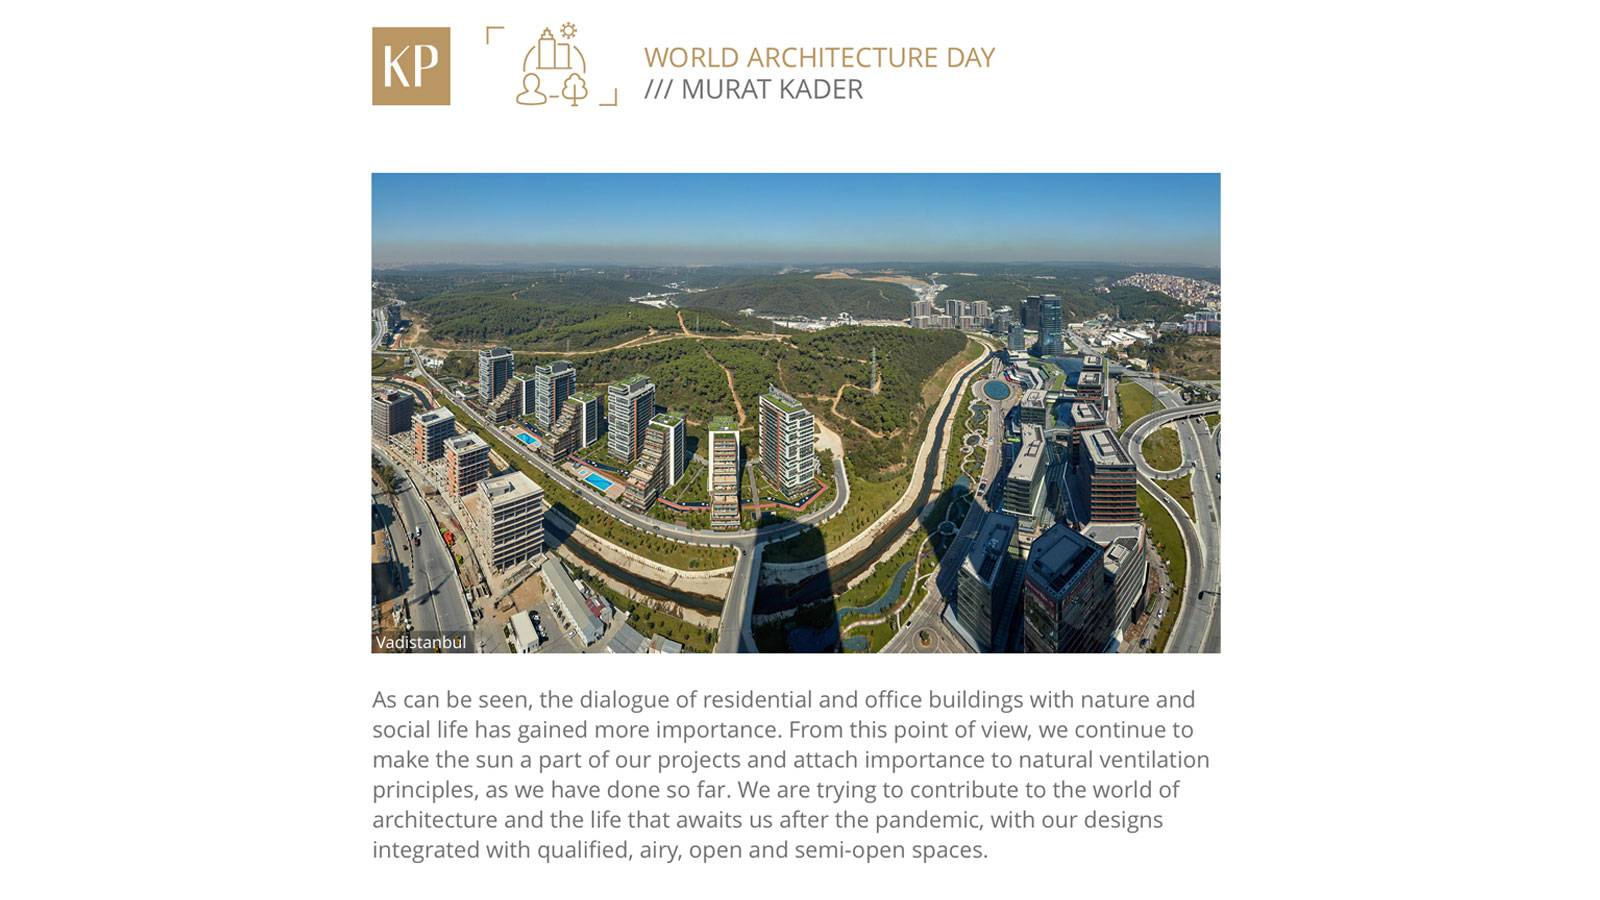 05.10.2020 World Architecture Day